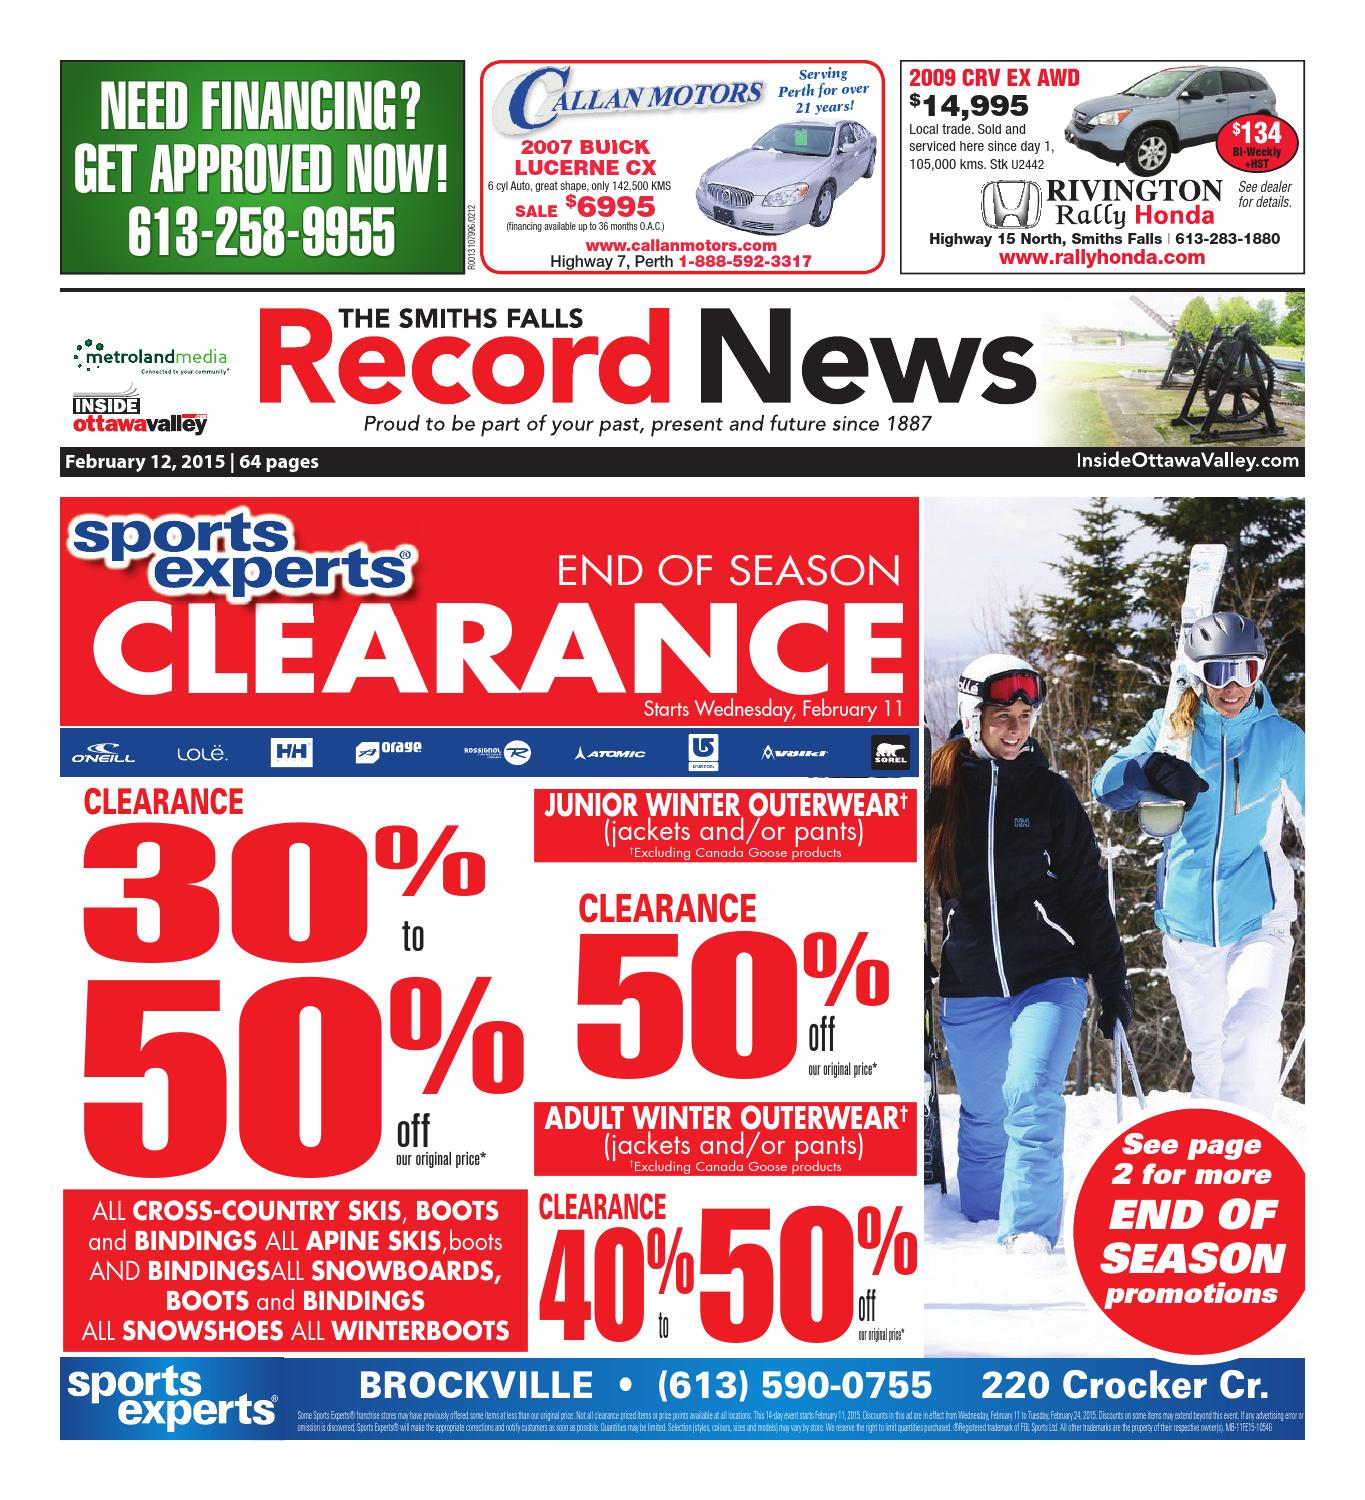 Smithsfalls021215 by Metroland East - Smiths Falls Record News - issuu b89ca273e